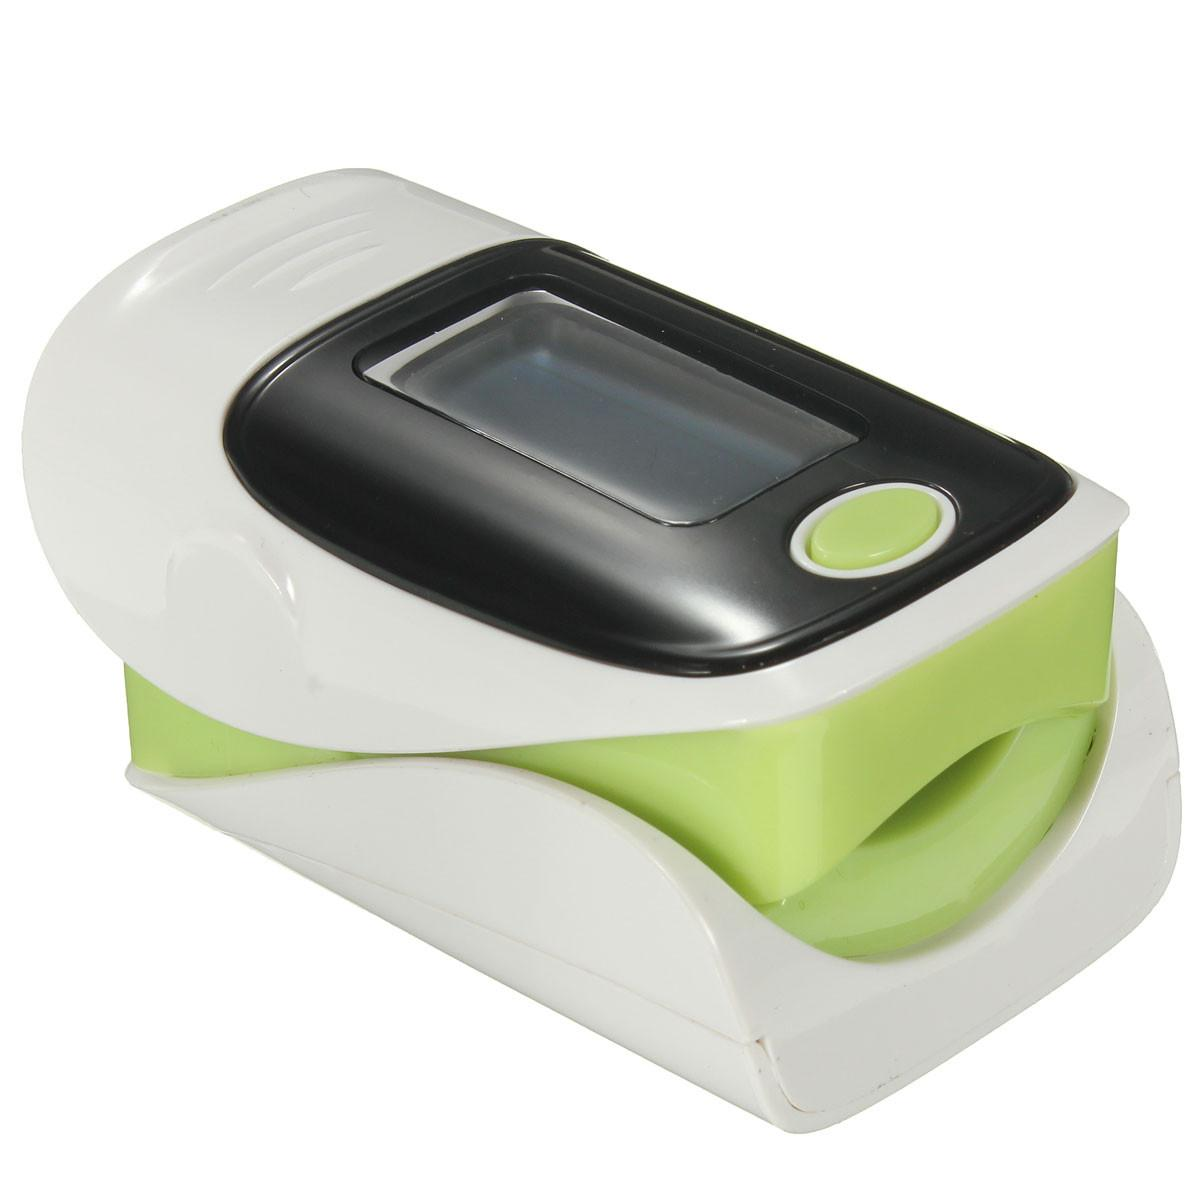 Finger Fingertip Blood Oxygen Meter SPO2 OLED Pulse Heart Rate Monitor Oximeter White+Green (Intl) - intl bán chạy